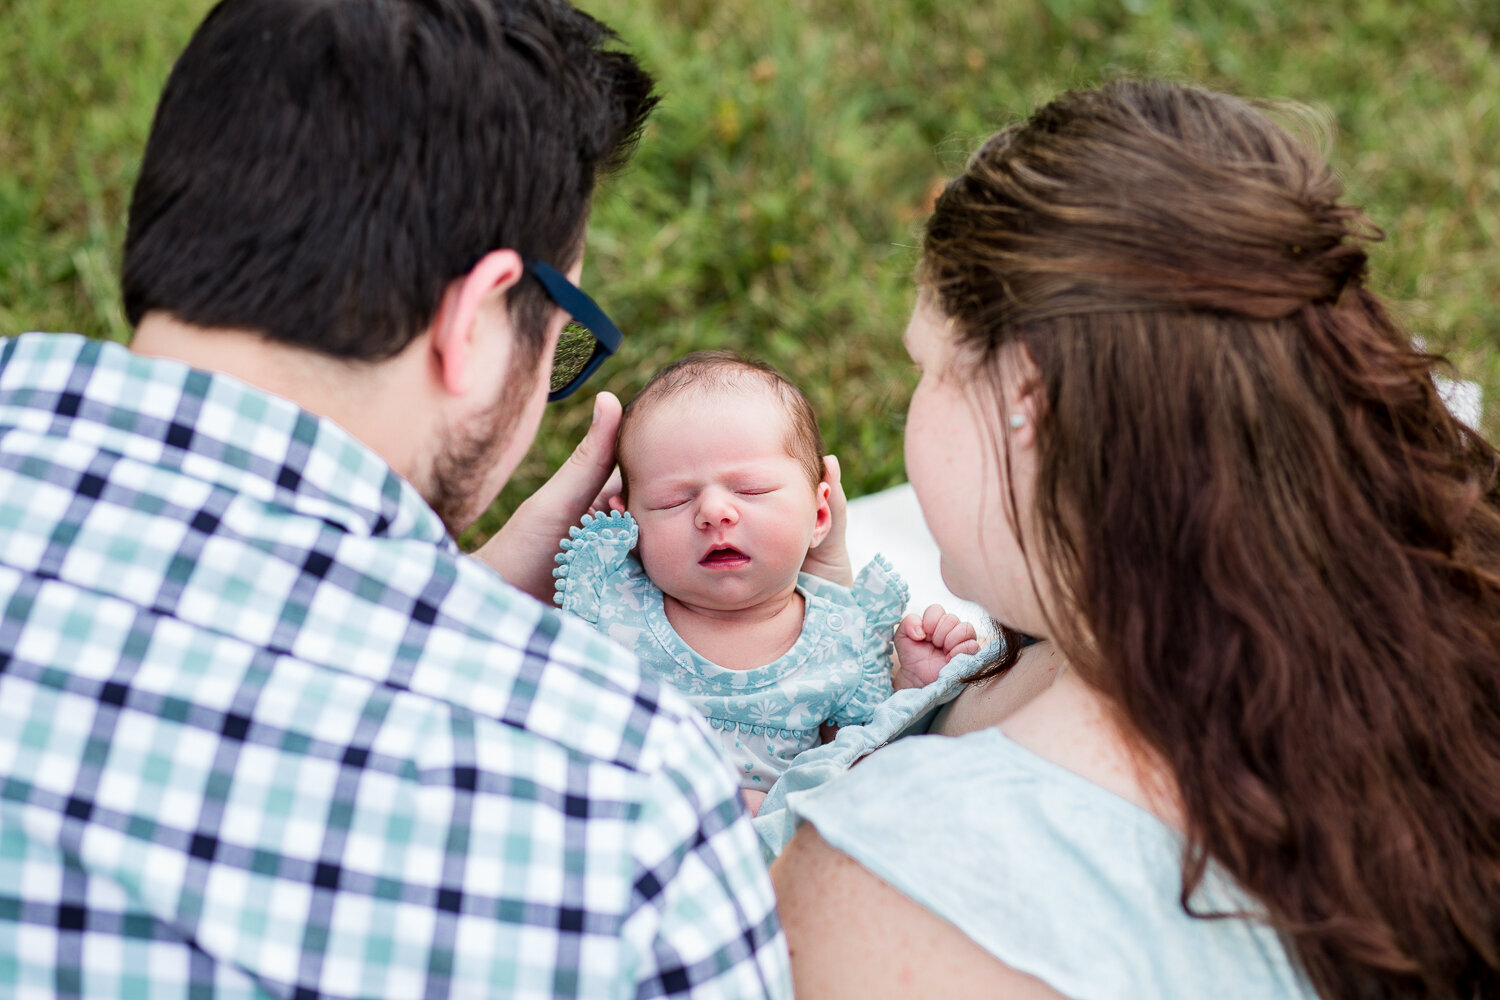 Outdoor-Newborn-Lifestyle-Photography-Session-Lexington-KY-Photographer-8